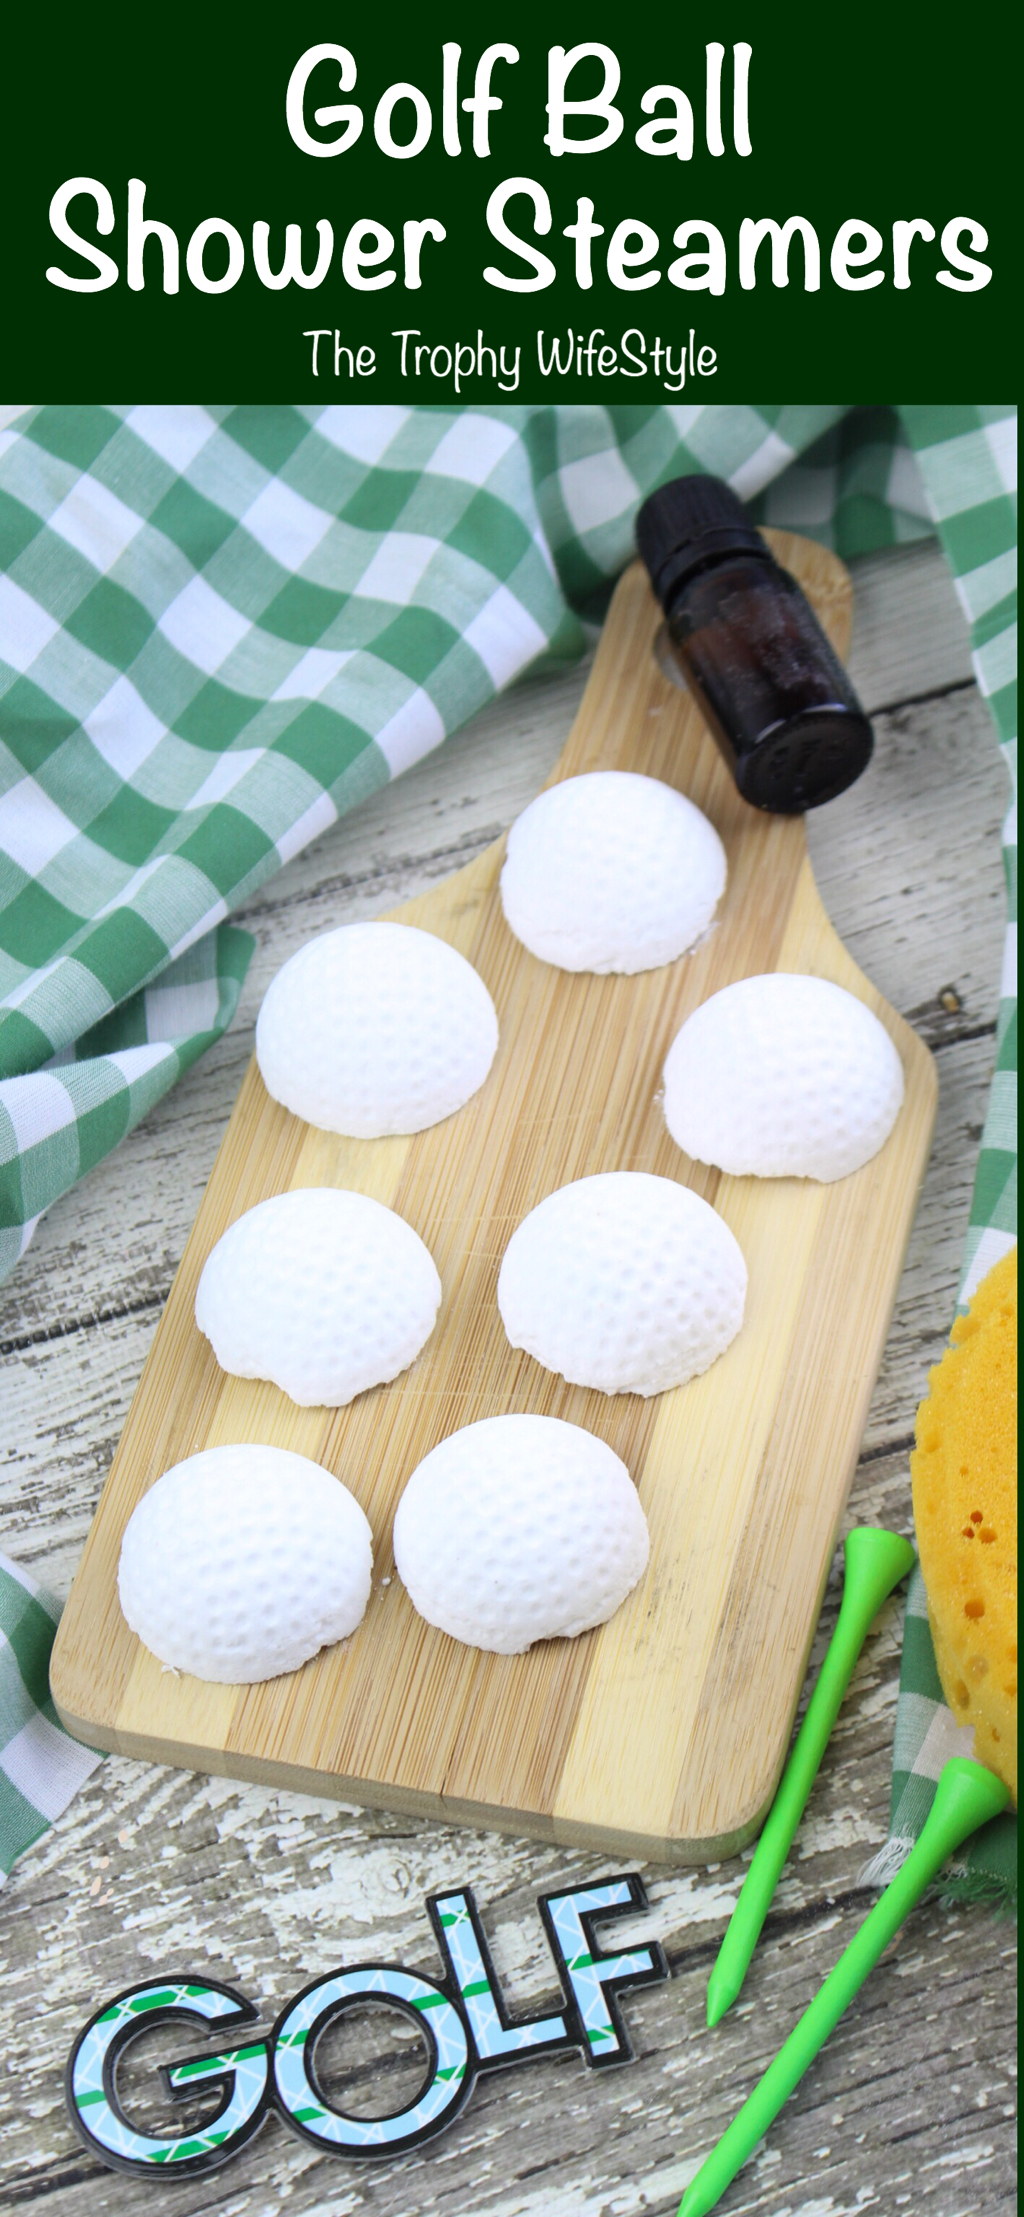 Golf Ball Shower Steamers